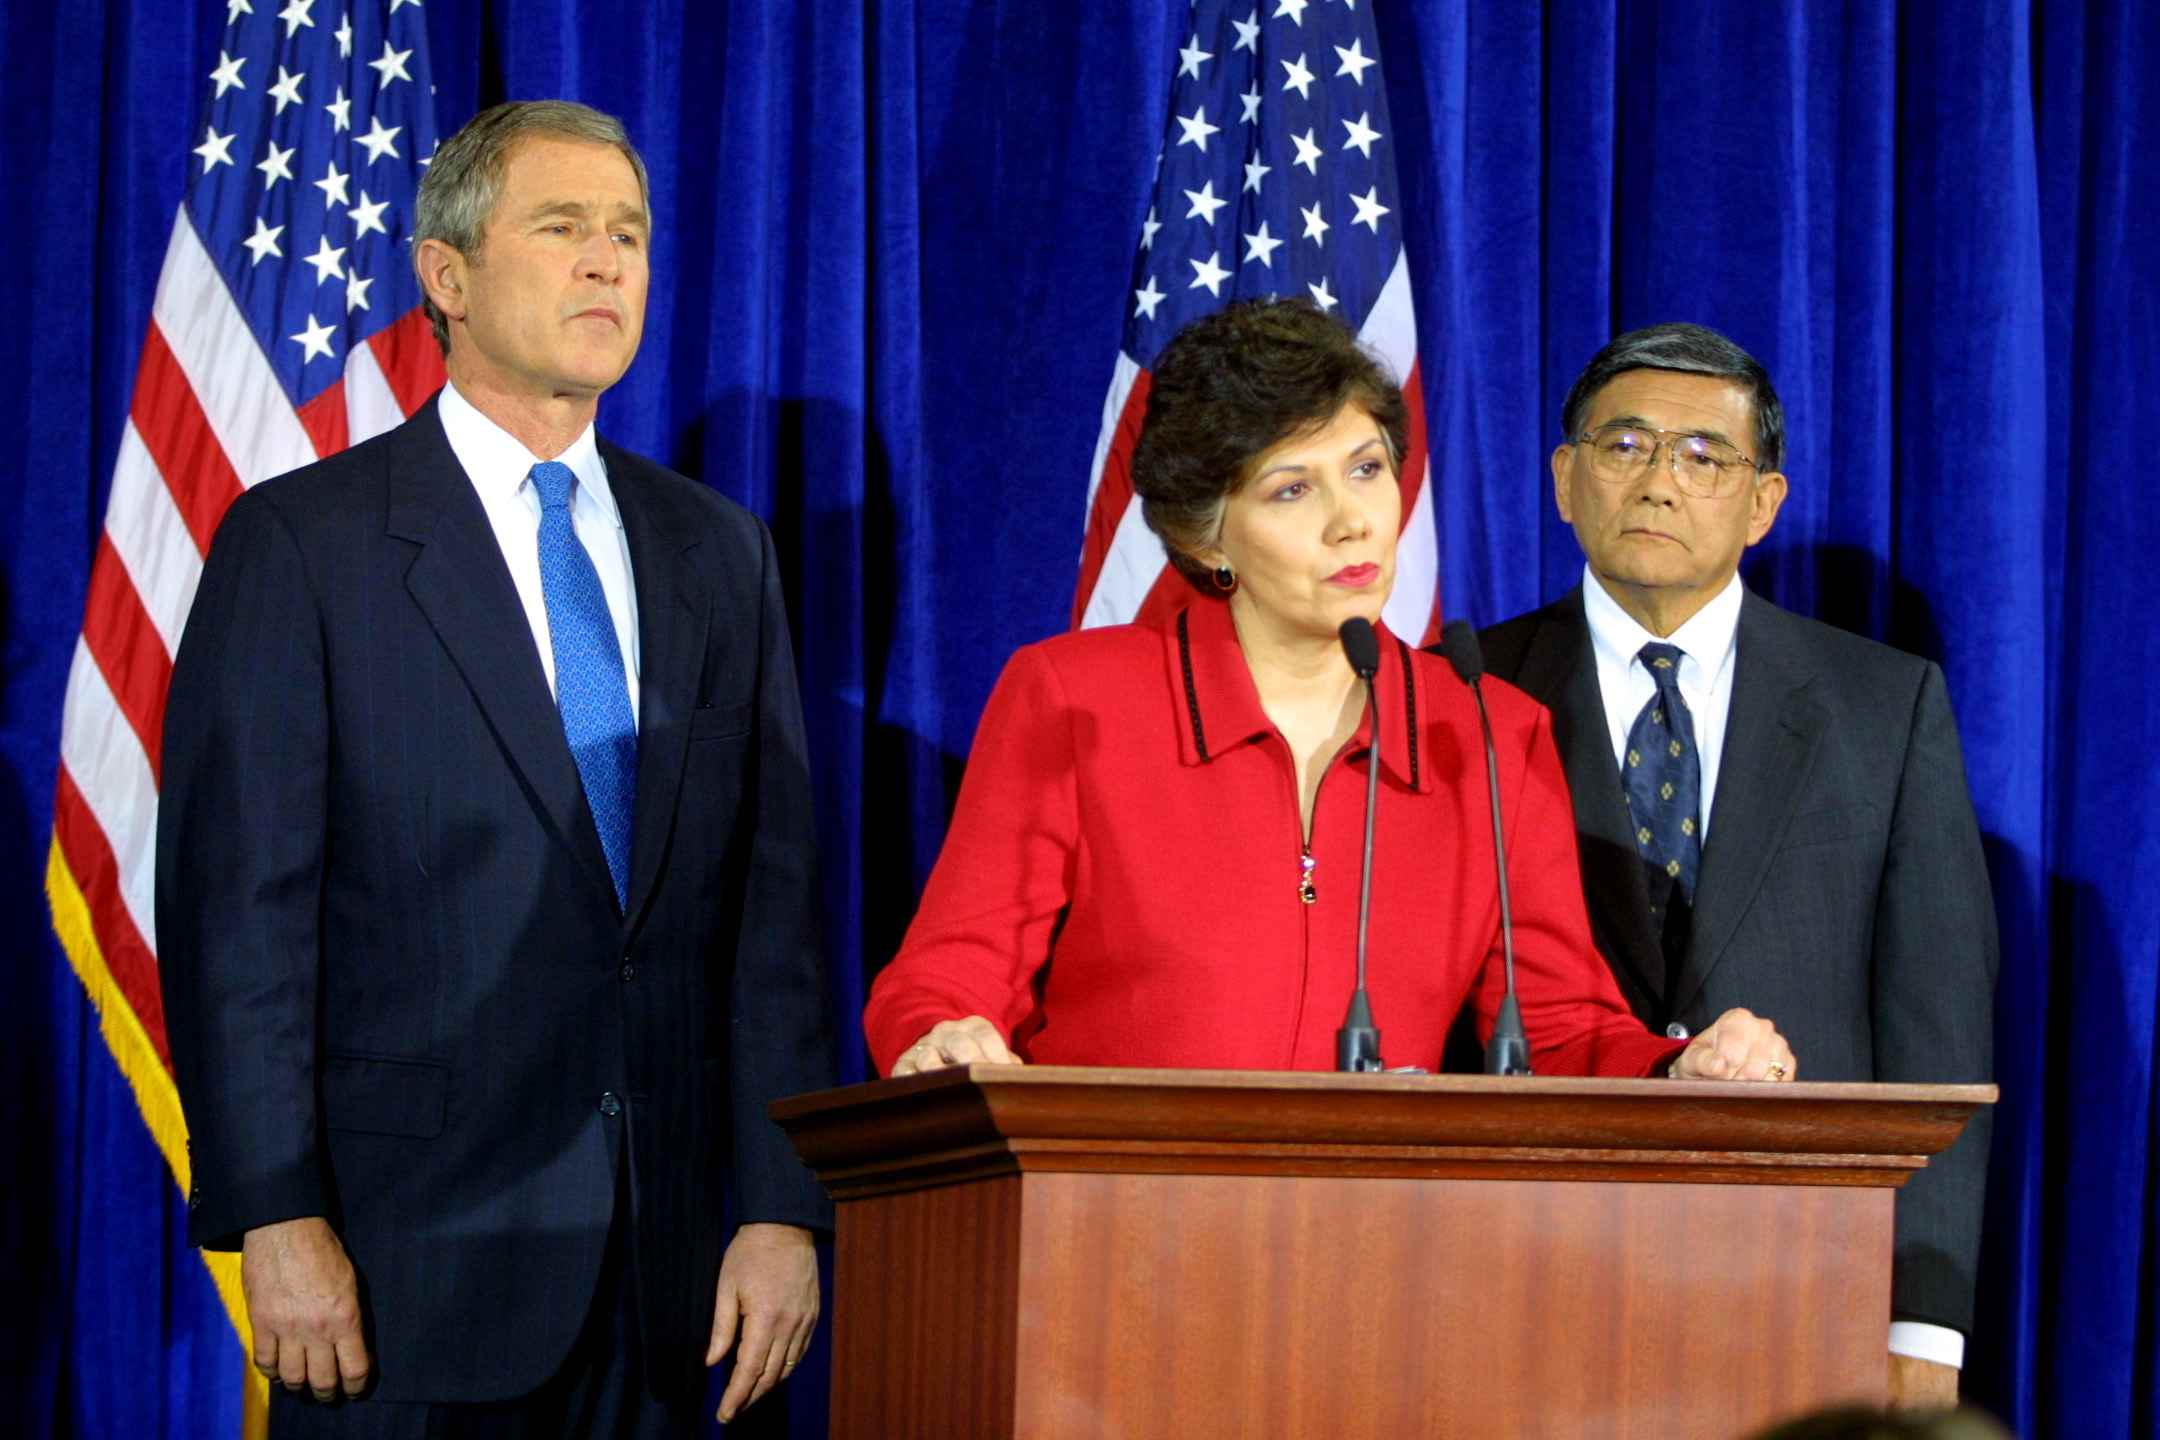 Linda Chavez at Lectern with U.S. President-elect George W. Bush